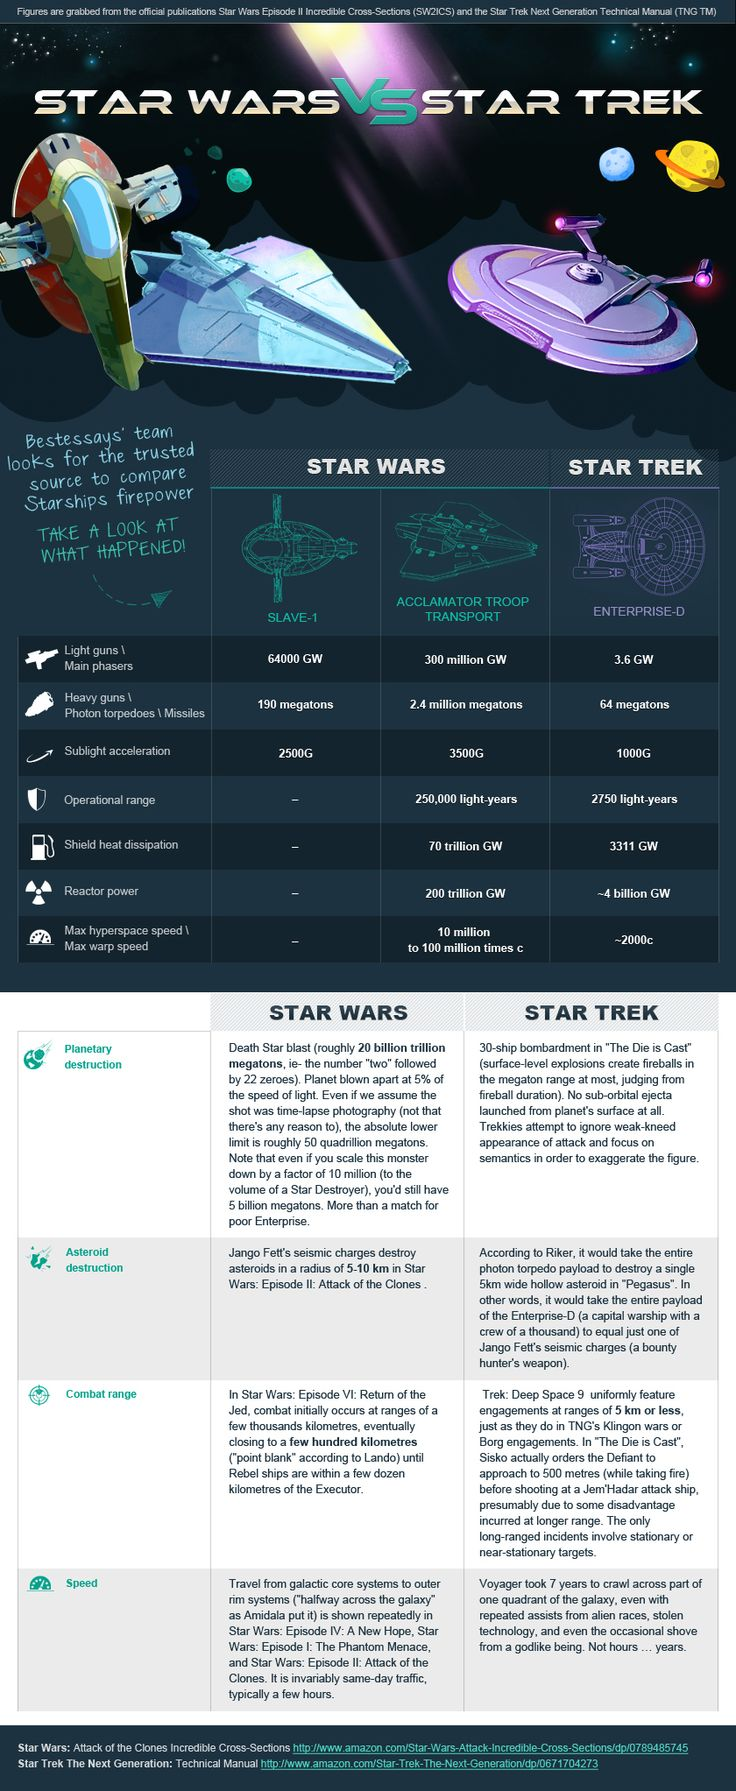 Star Wars vs. Star Trek: The Starships Compared [Infographic] Internet Site, Stars Wars Vs Stars Trek,  Website, Scifi, Star Wars, Infographic Entertainment, Starwars Stuff, Geek Zone, Star Trek